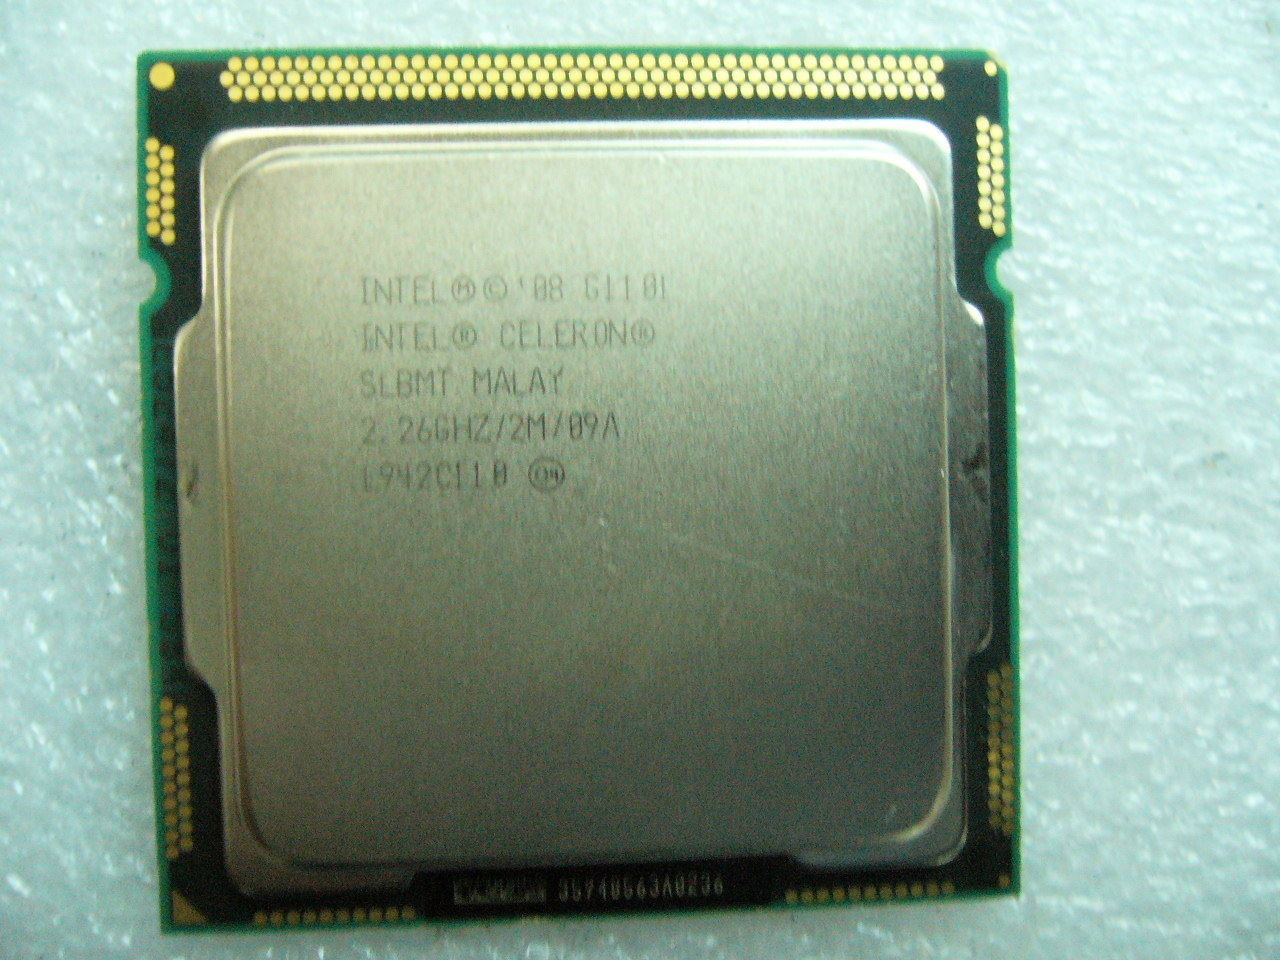 QTY 1x INTEL Celeron CPU G1101 2.26GHZ/2MB LGA1156 SLBMT